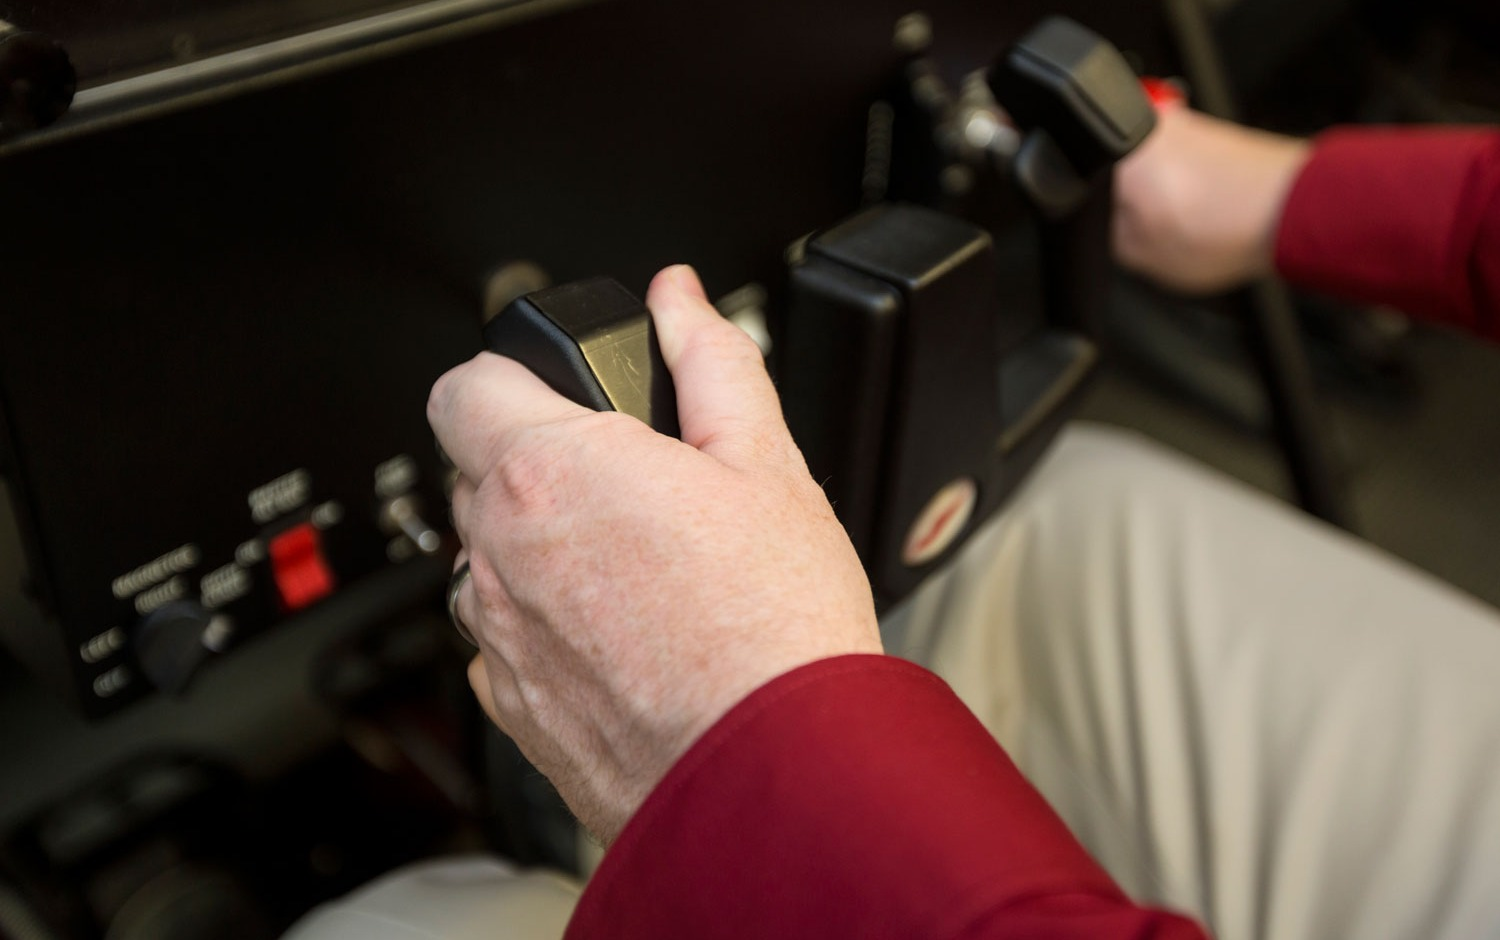 The Best Flight Simulator Controls for Every Pilot